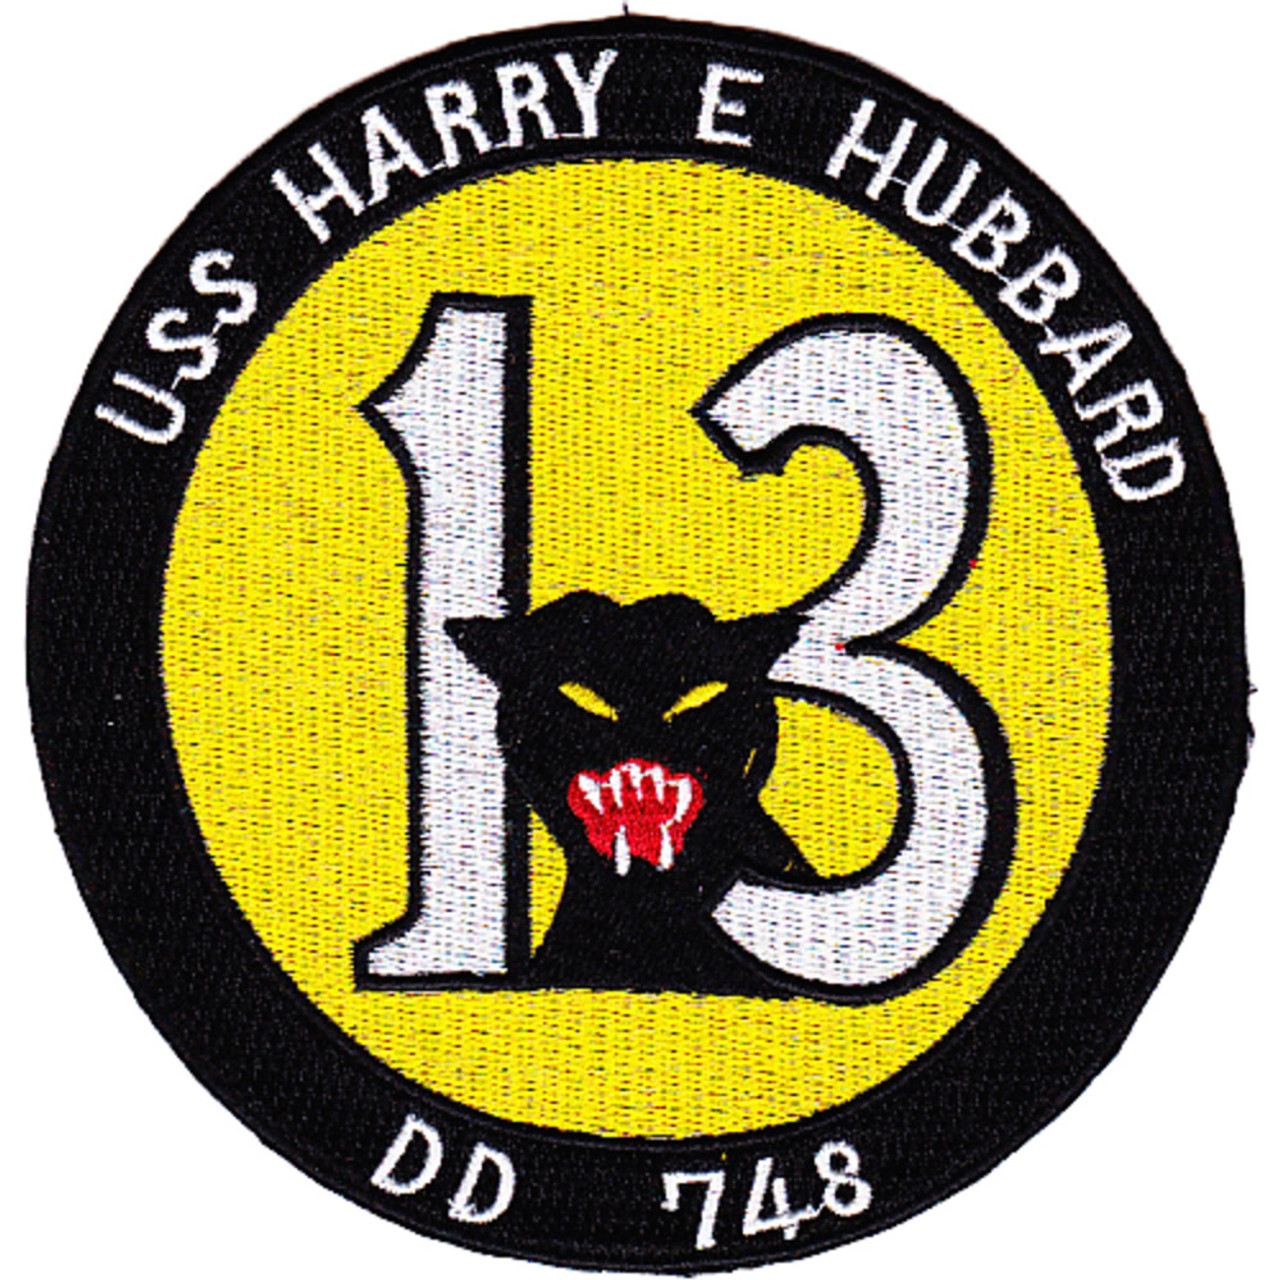 Uss H E Hubbard Dd 748 Destroyer Ship Third Version Patch Destroyer Patches Navy Patches Popular Patch Patch 11.1 bug megathread and patch discussion. uss h e hubbard dd 748 destroyer ship third version patch